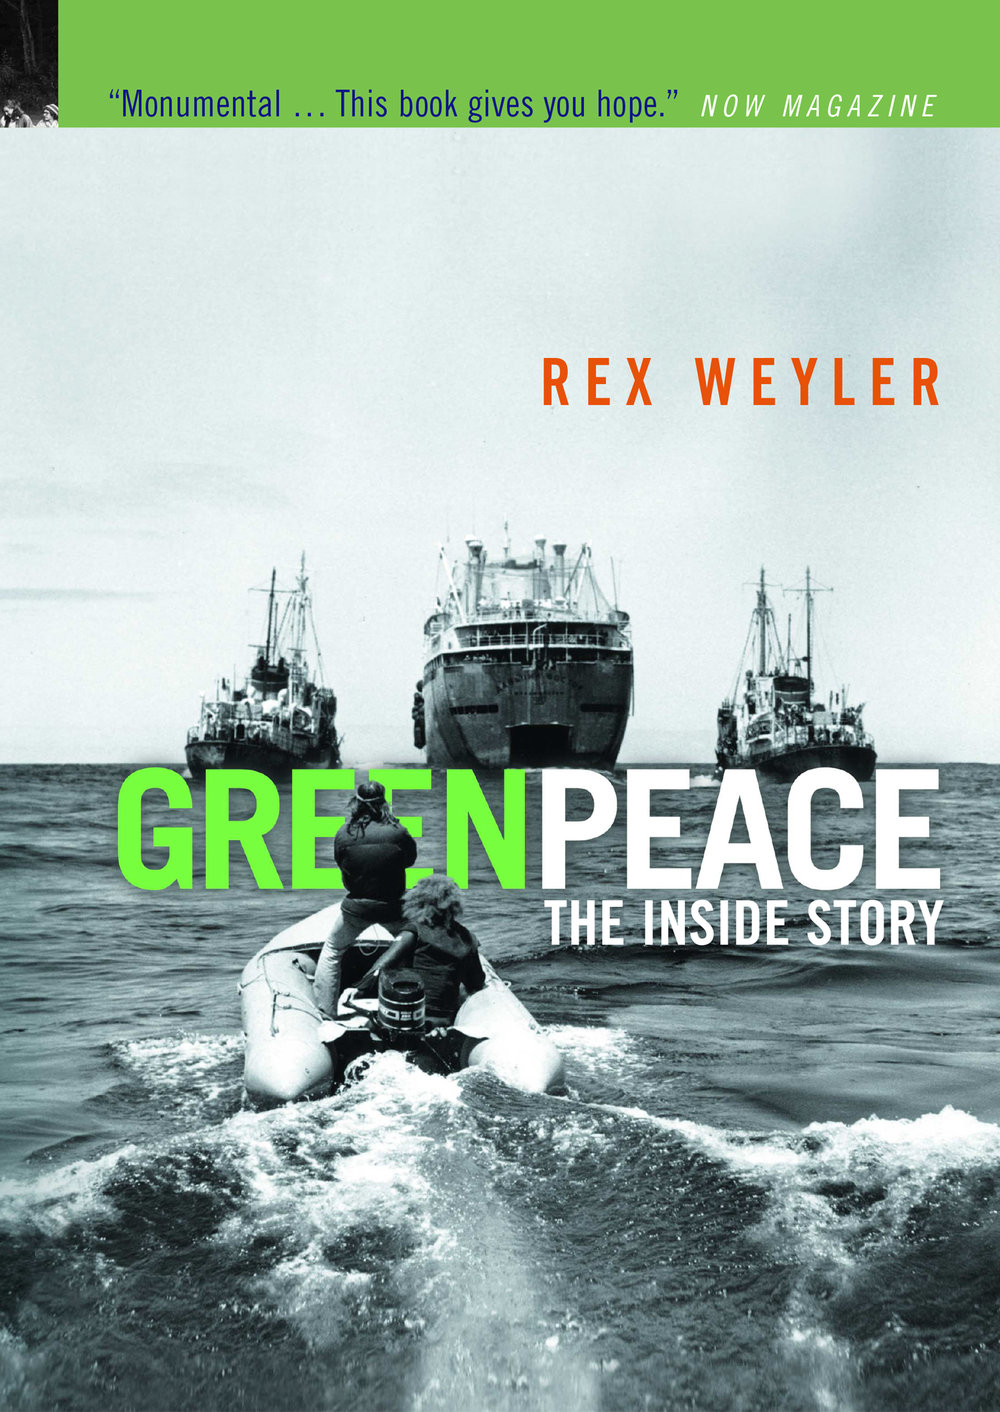 Greenpeace: The Inside Story - Greenpeace: The Inside Storyrecounts the definitive history of the world's most renowned ecology action group. Beginning in the 1960s, the story follows our small cadre of peace activists, as we set out to start an